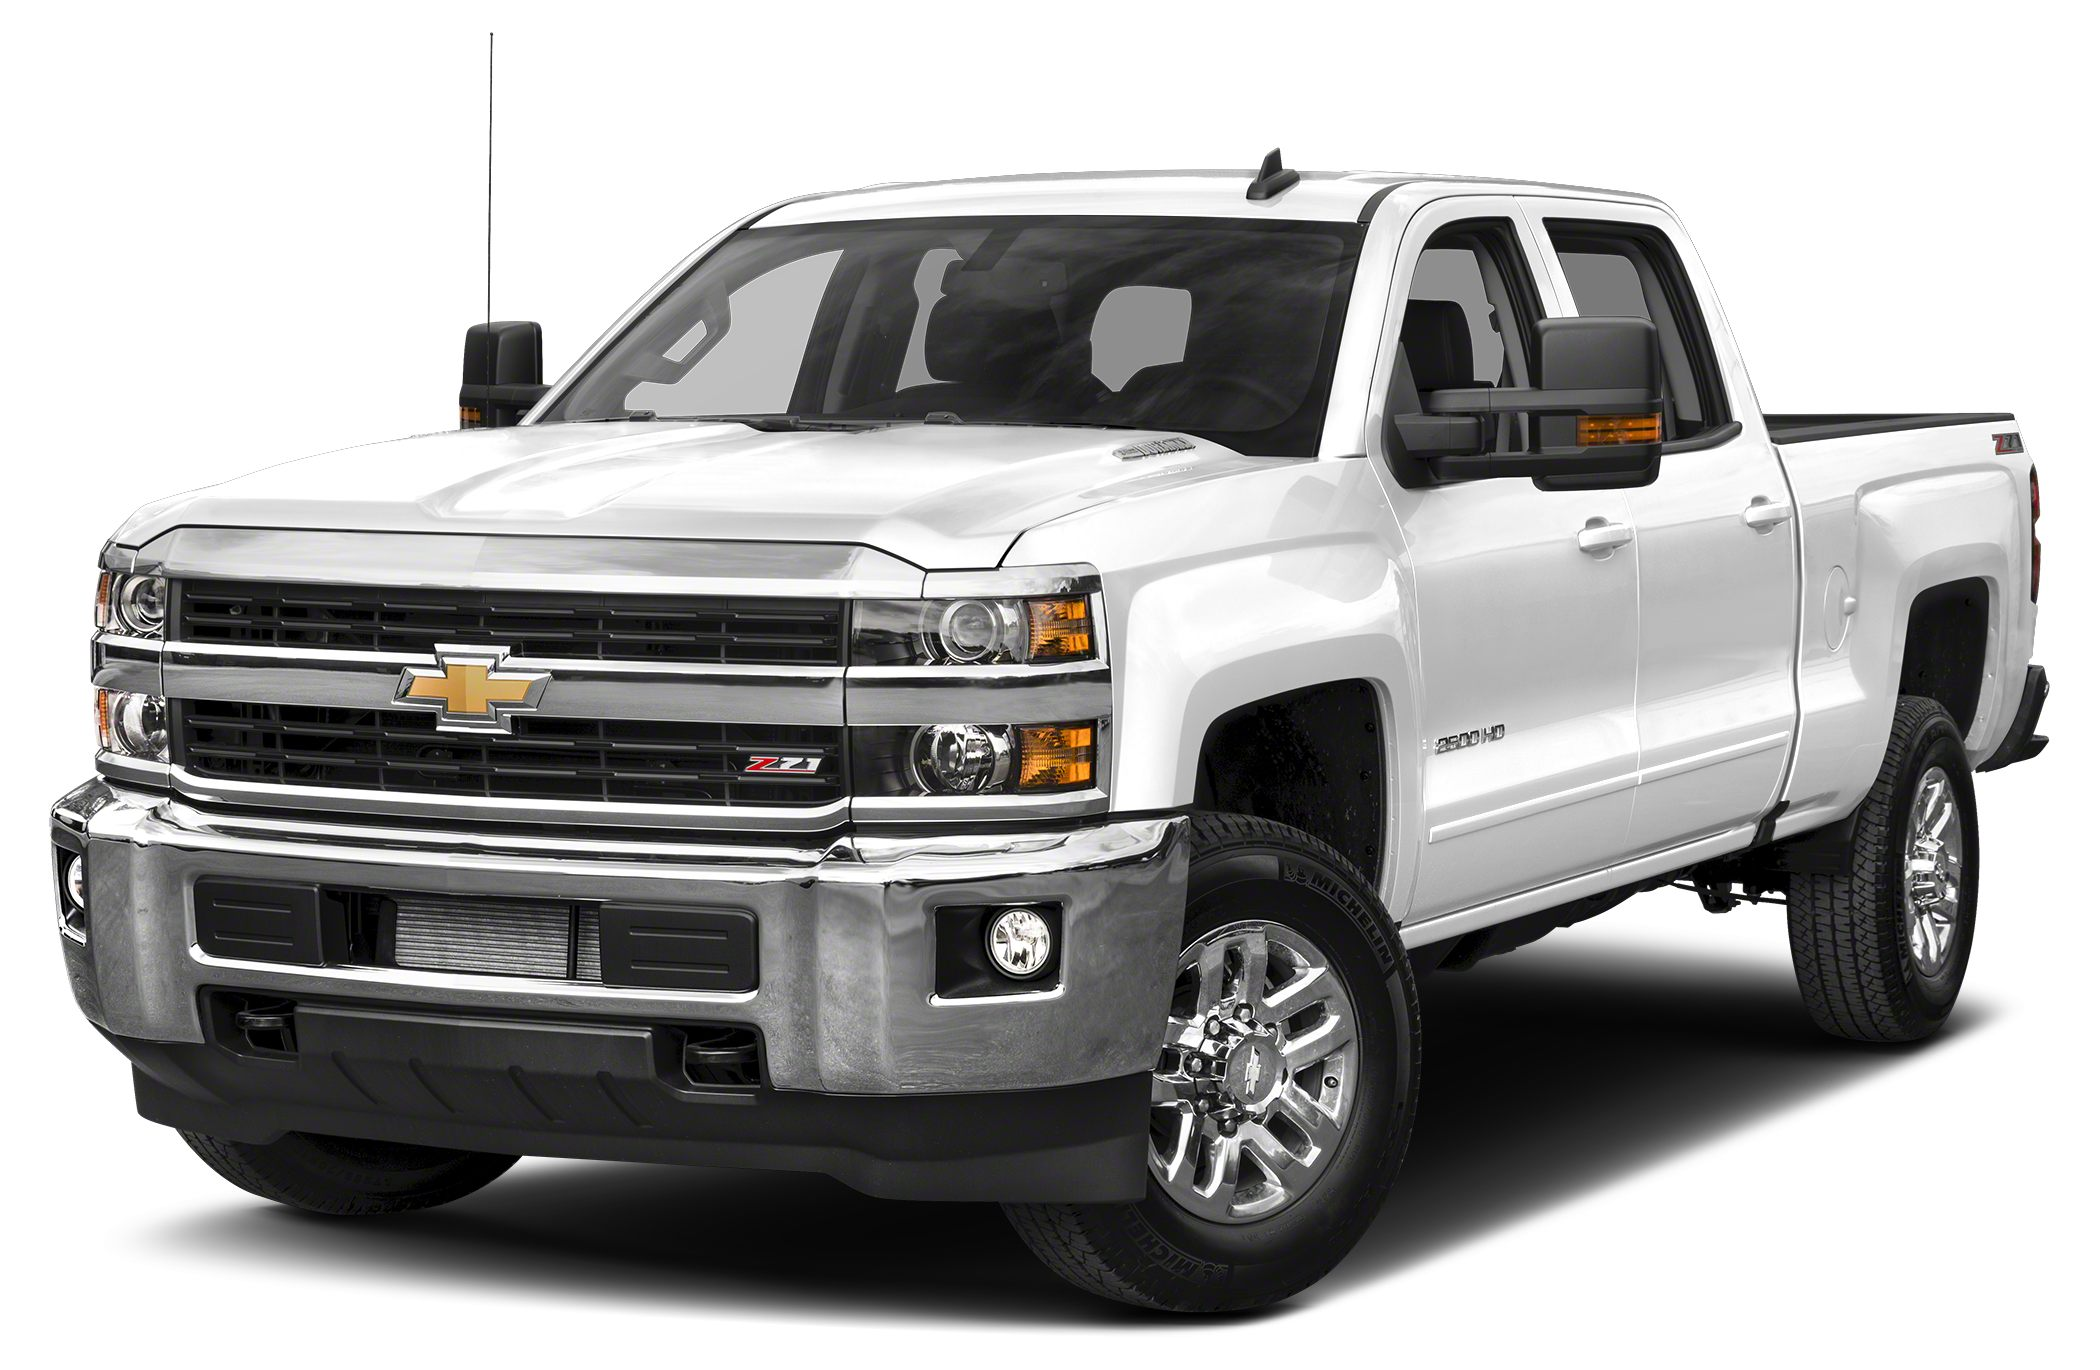 2018 Chevrolet Silverado 2500HD LT Miles 11Color Summit White Stock 180078 VIN 1GC1KVEY0JF11